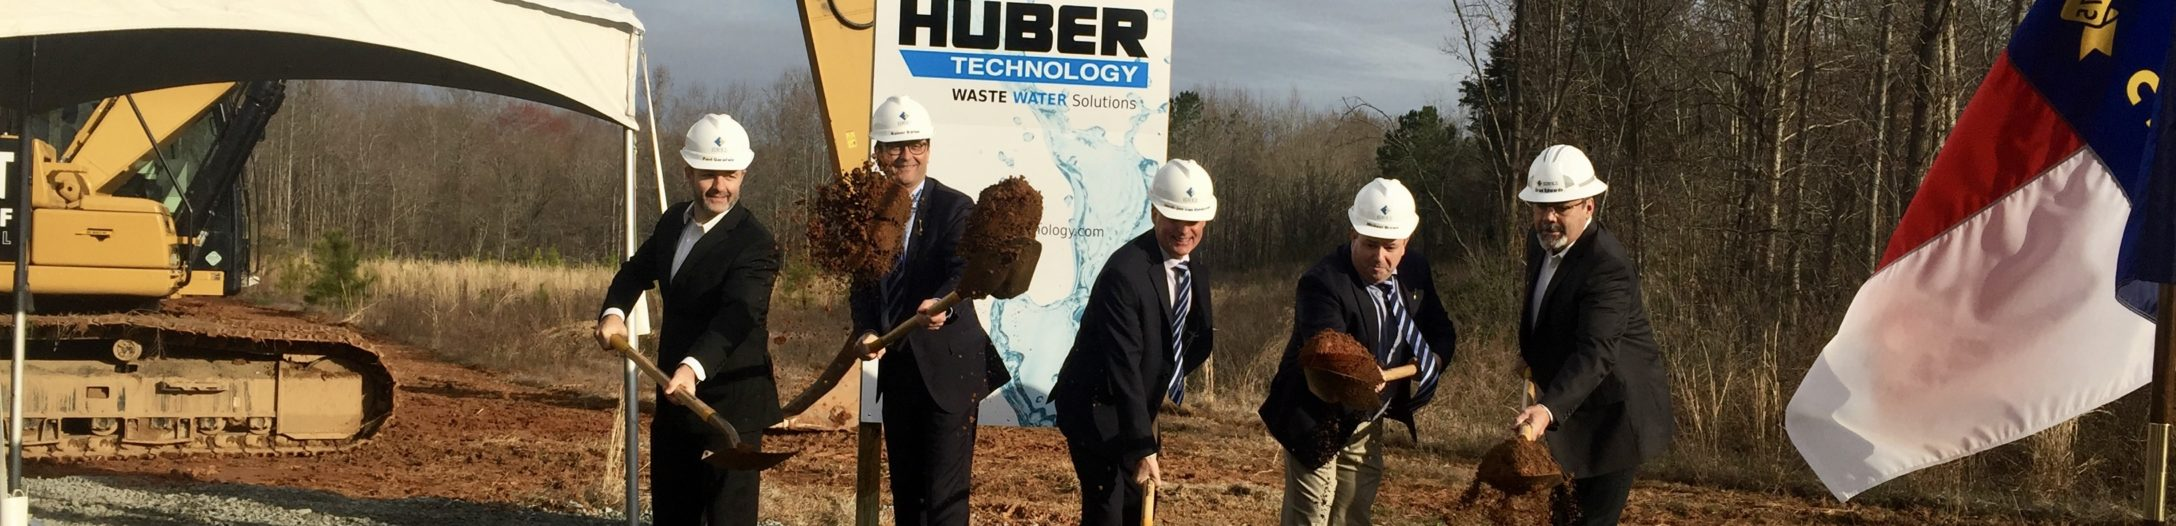 Huber_Technology_groundbreaking